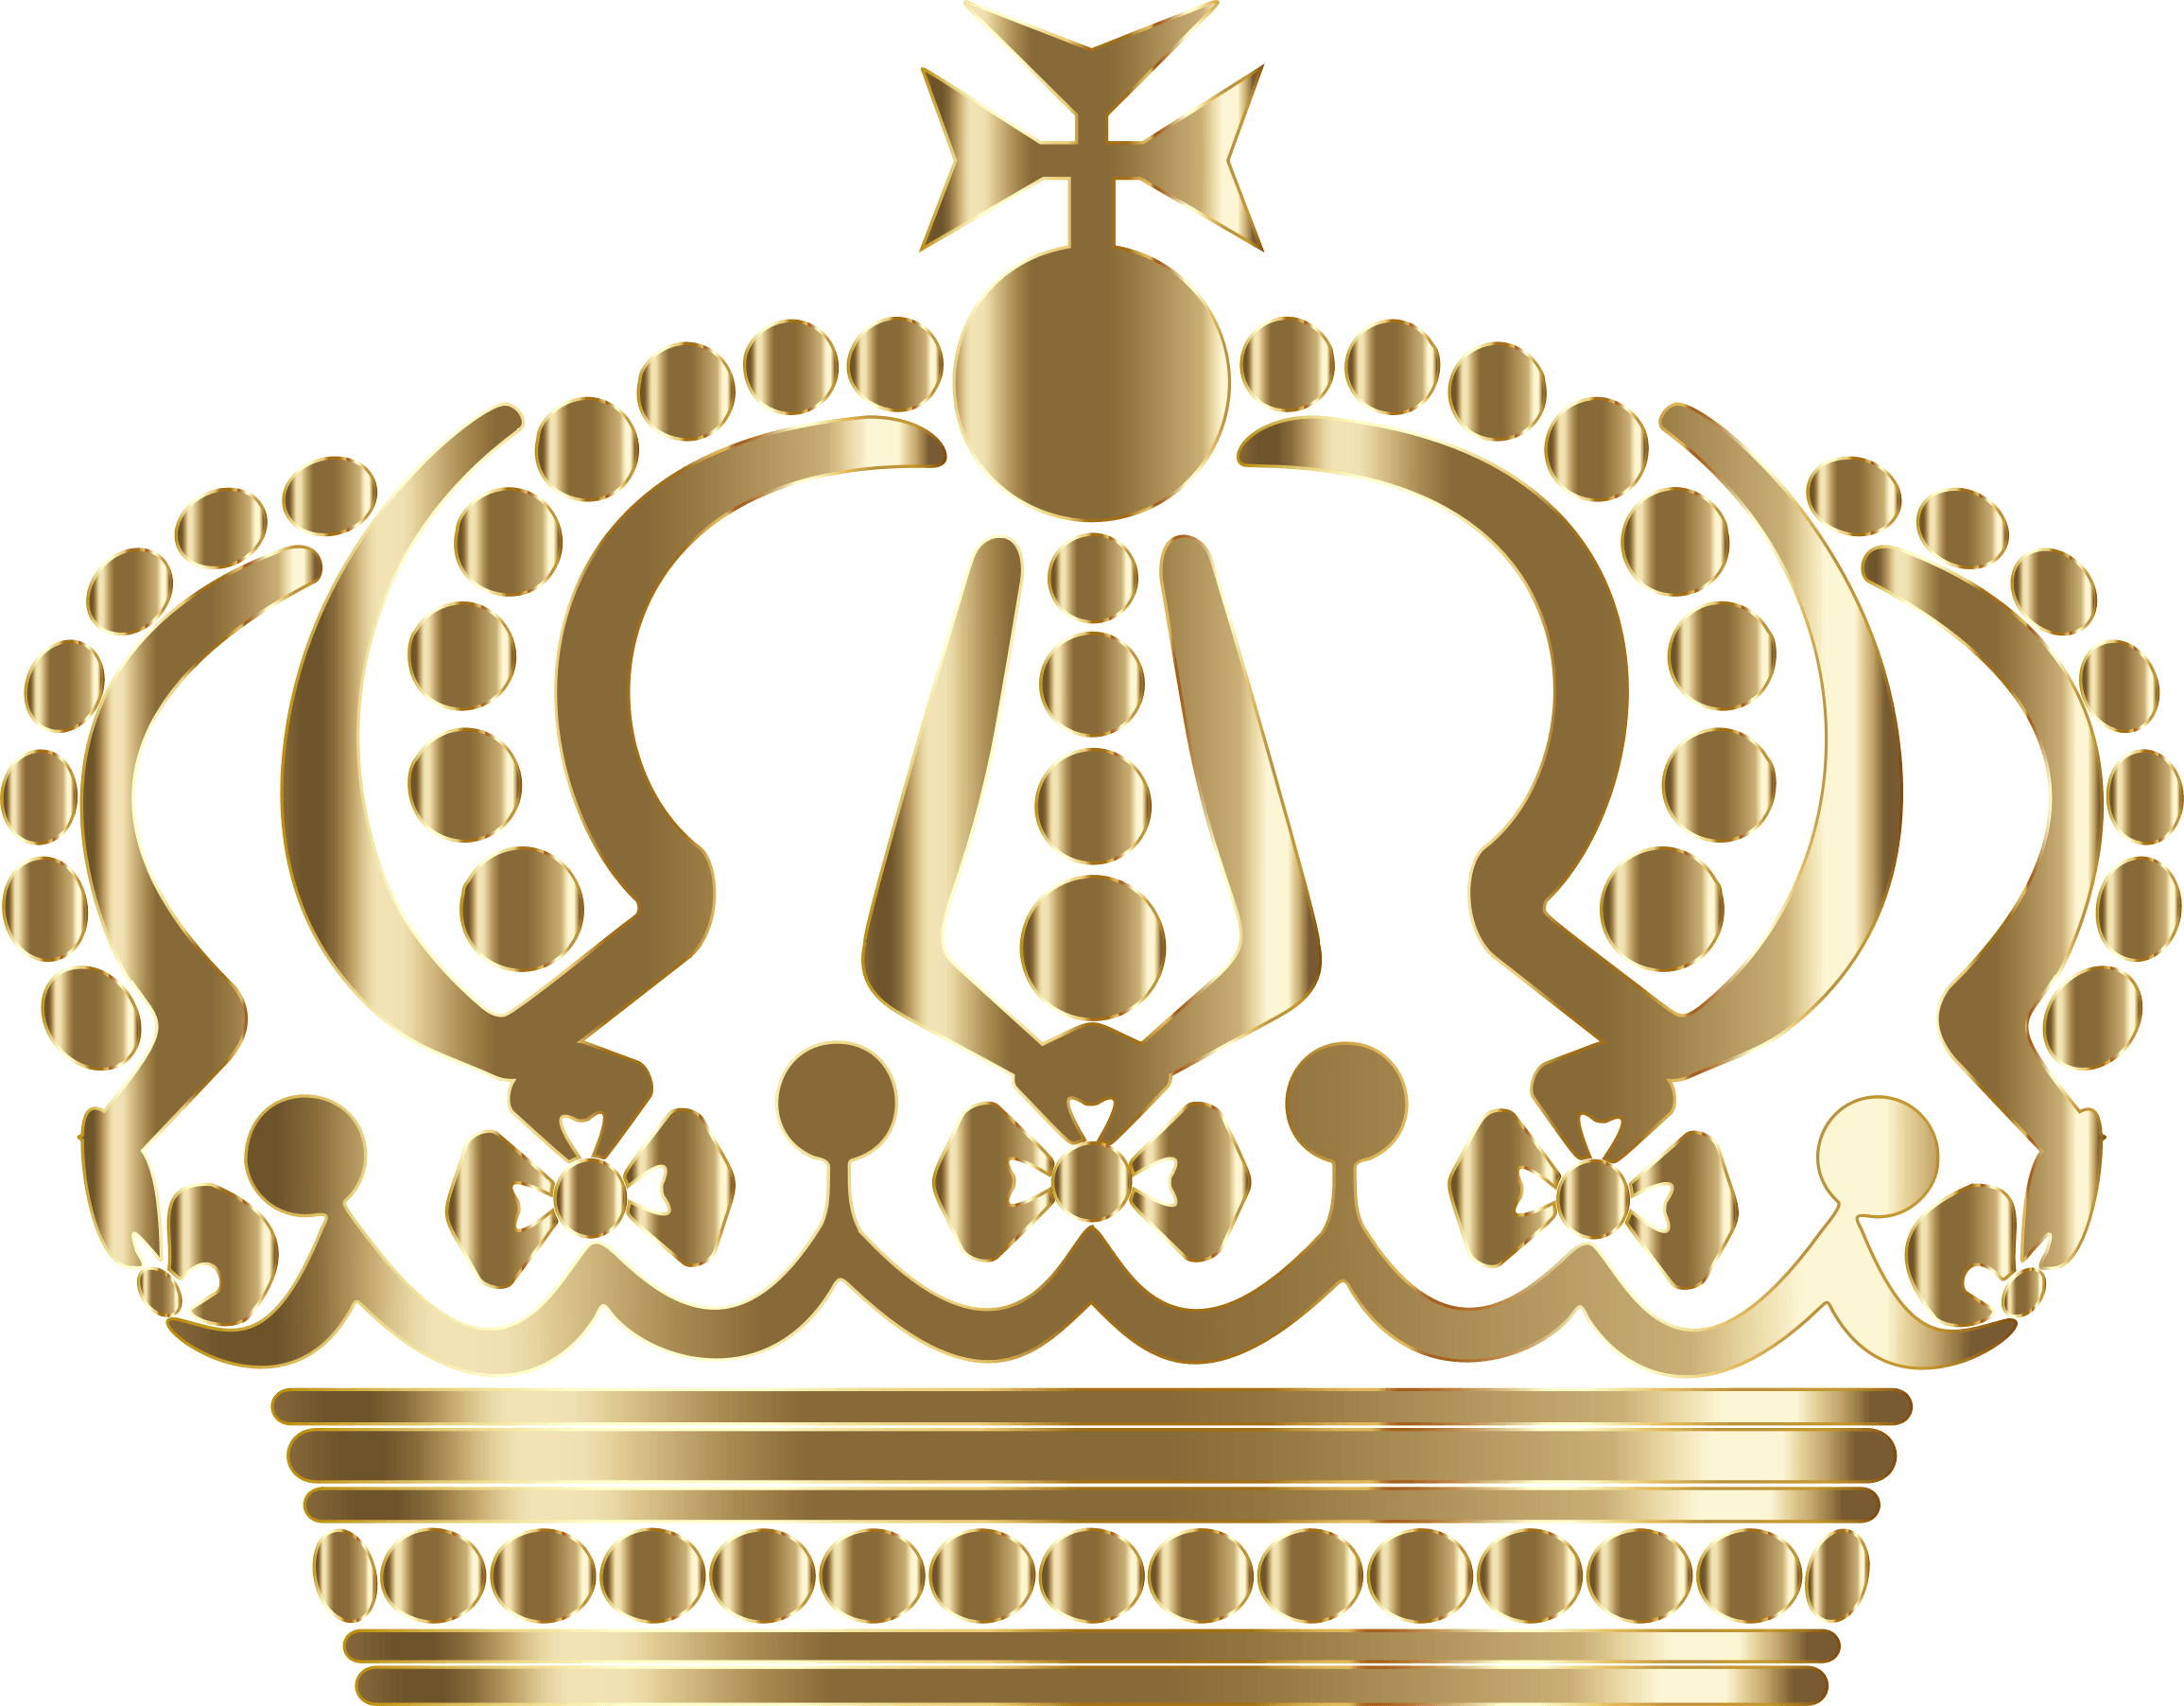 Crowns clipart royalty free. German crown cliparts collection